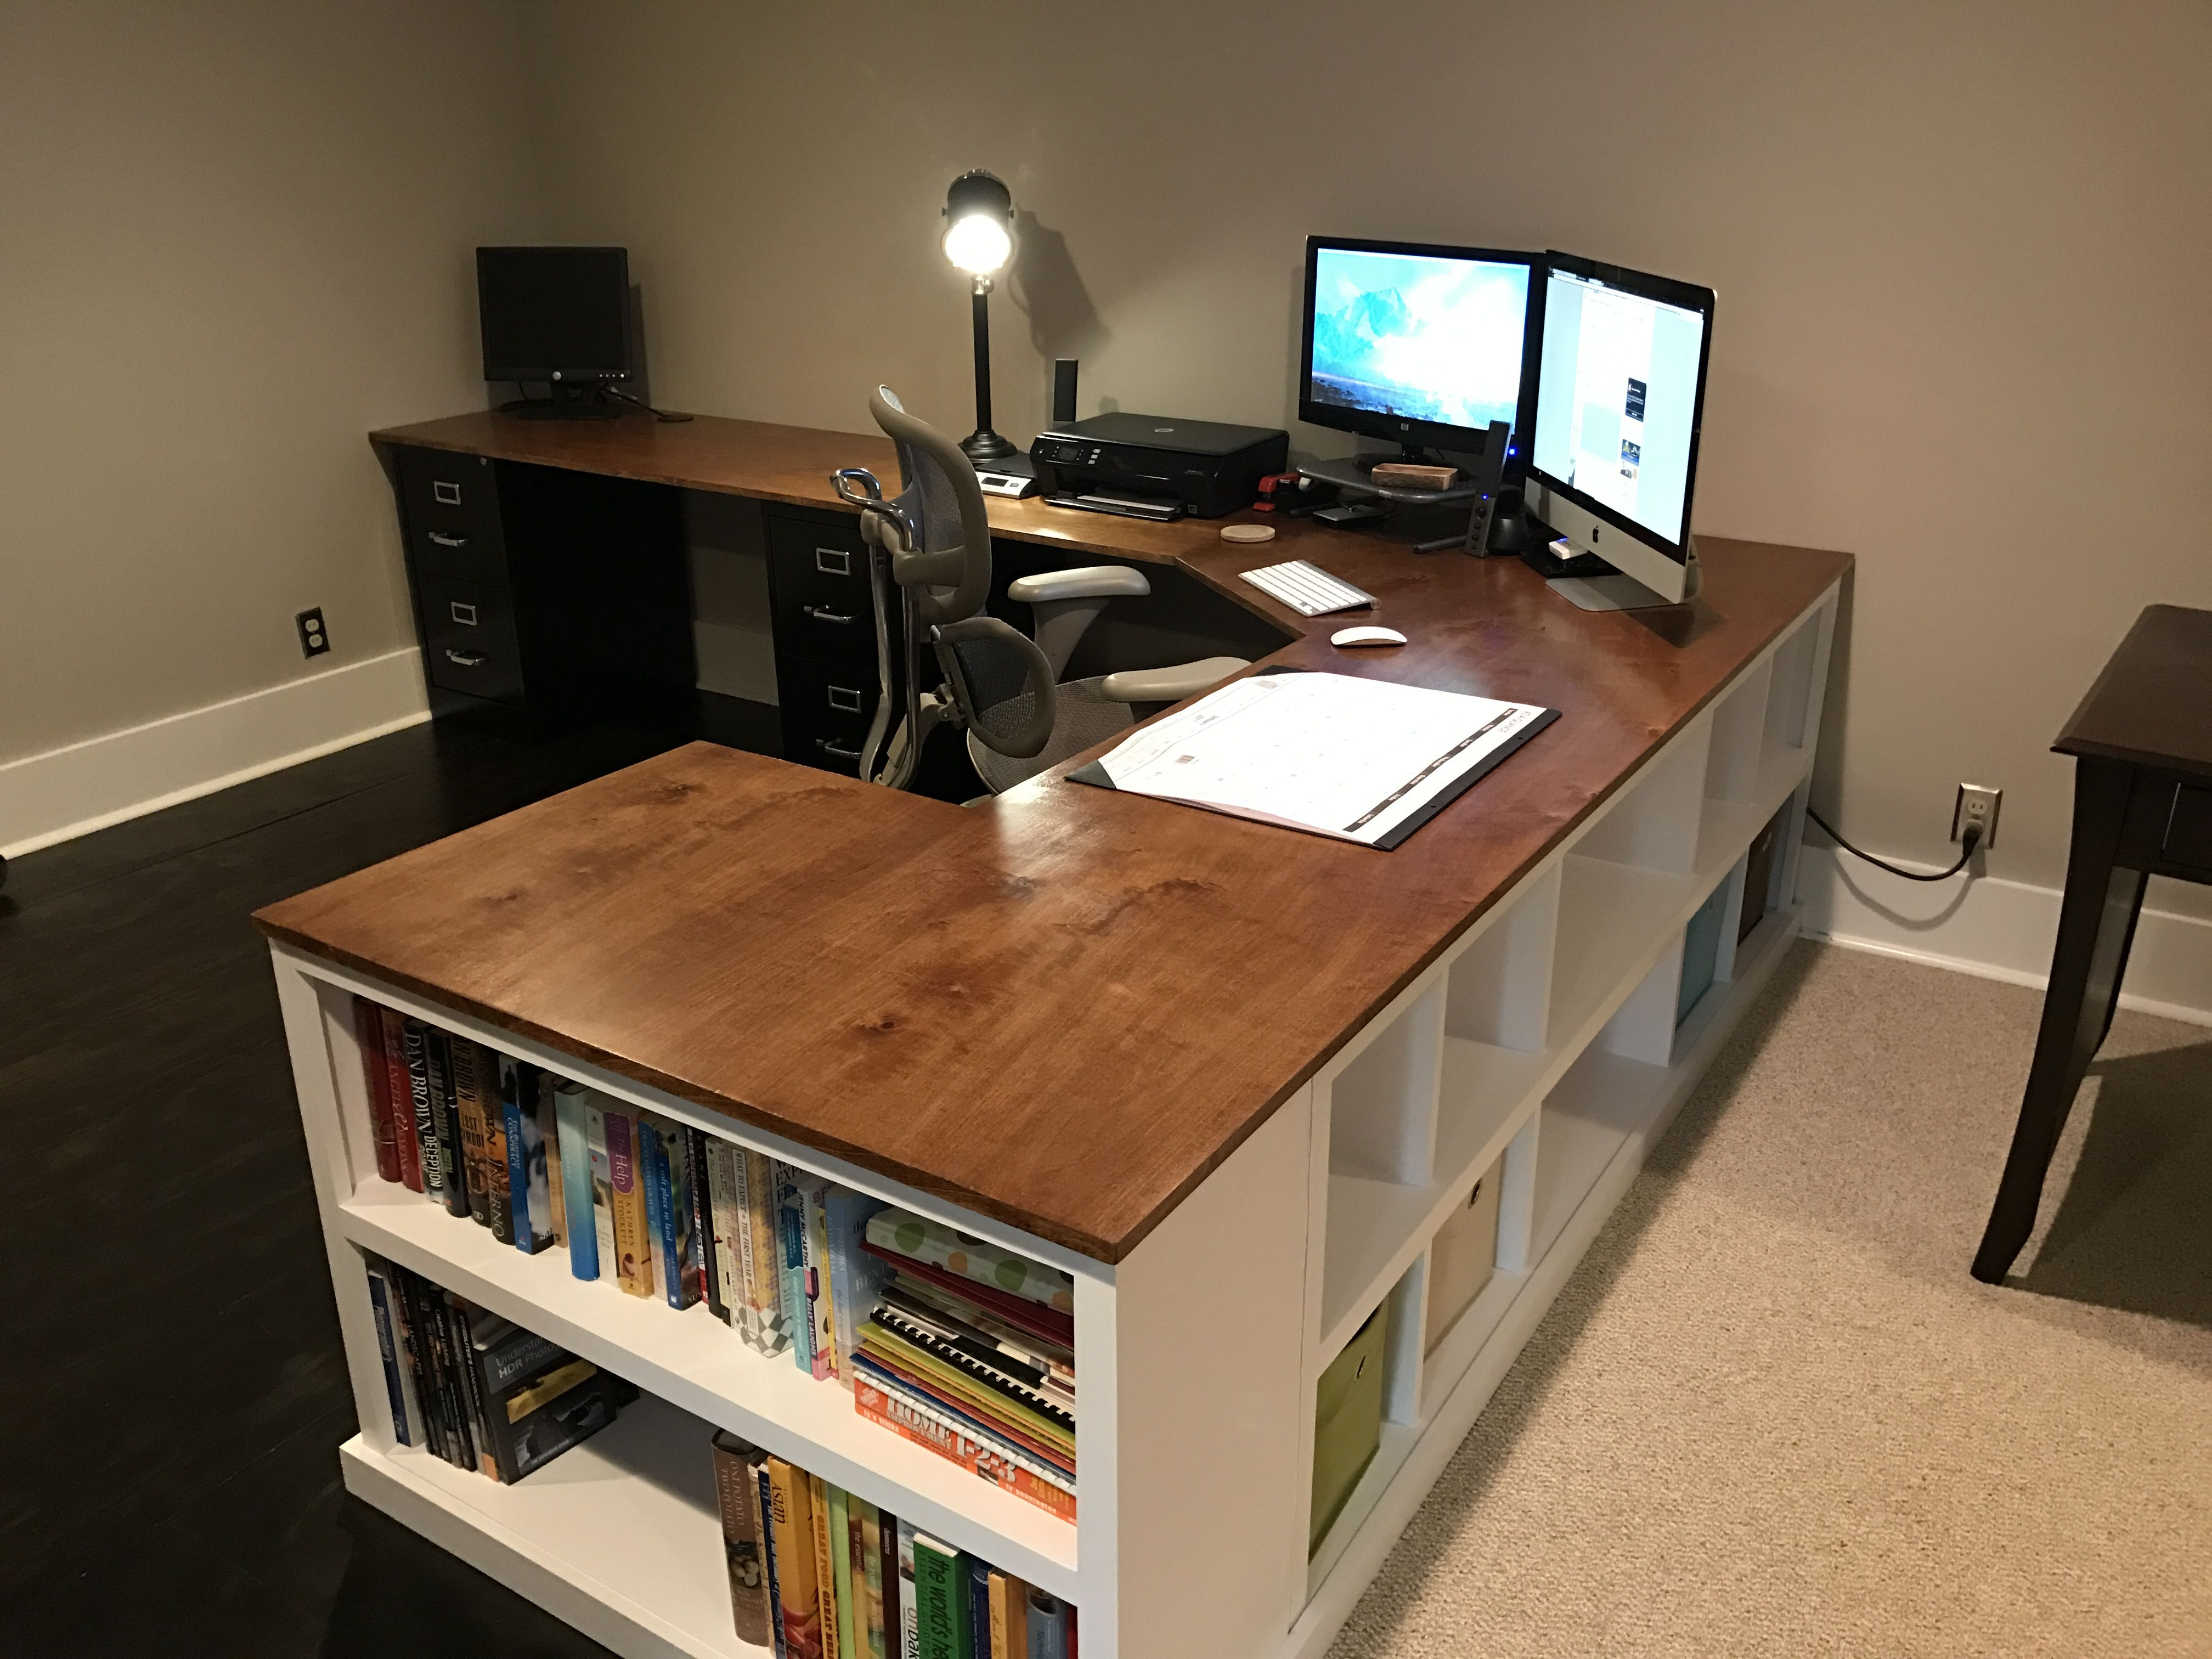 DIY Computer Desk Ideas That Make More Spirit Work Desks - Desks incorporate recessed computer technology